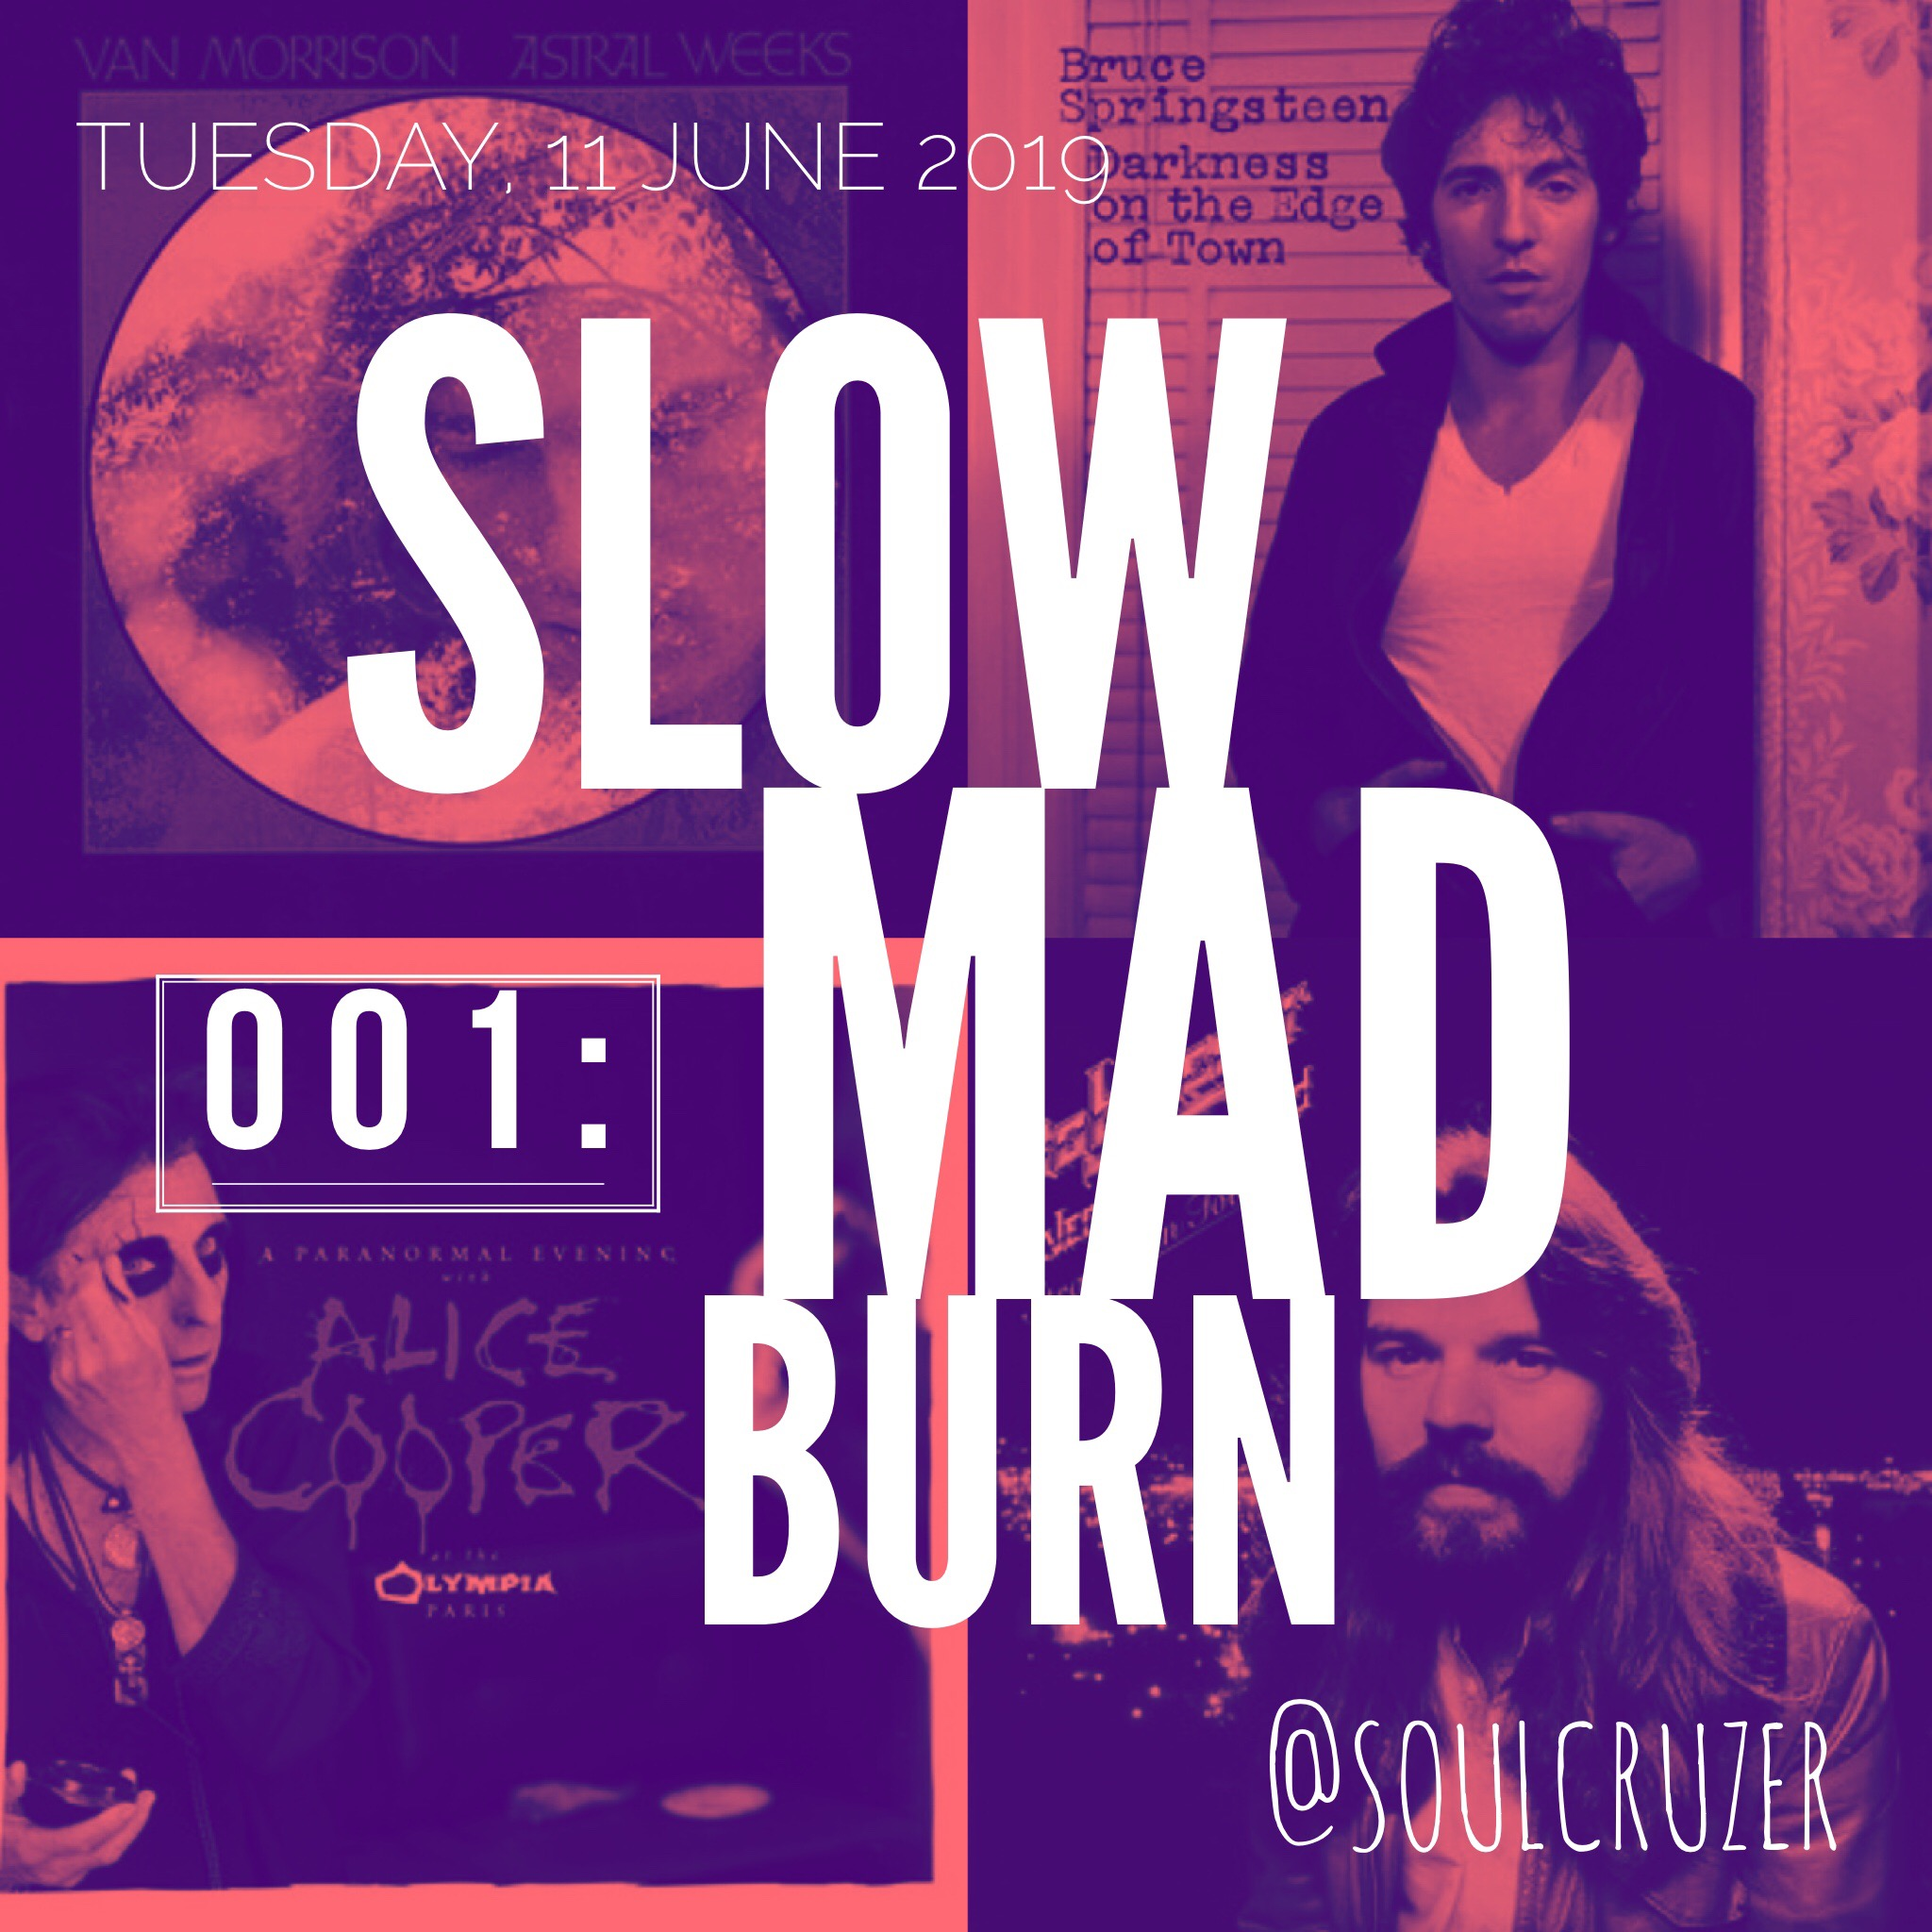 001: Slow mad burn